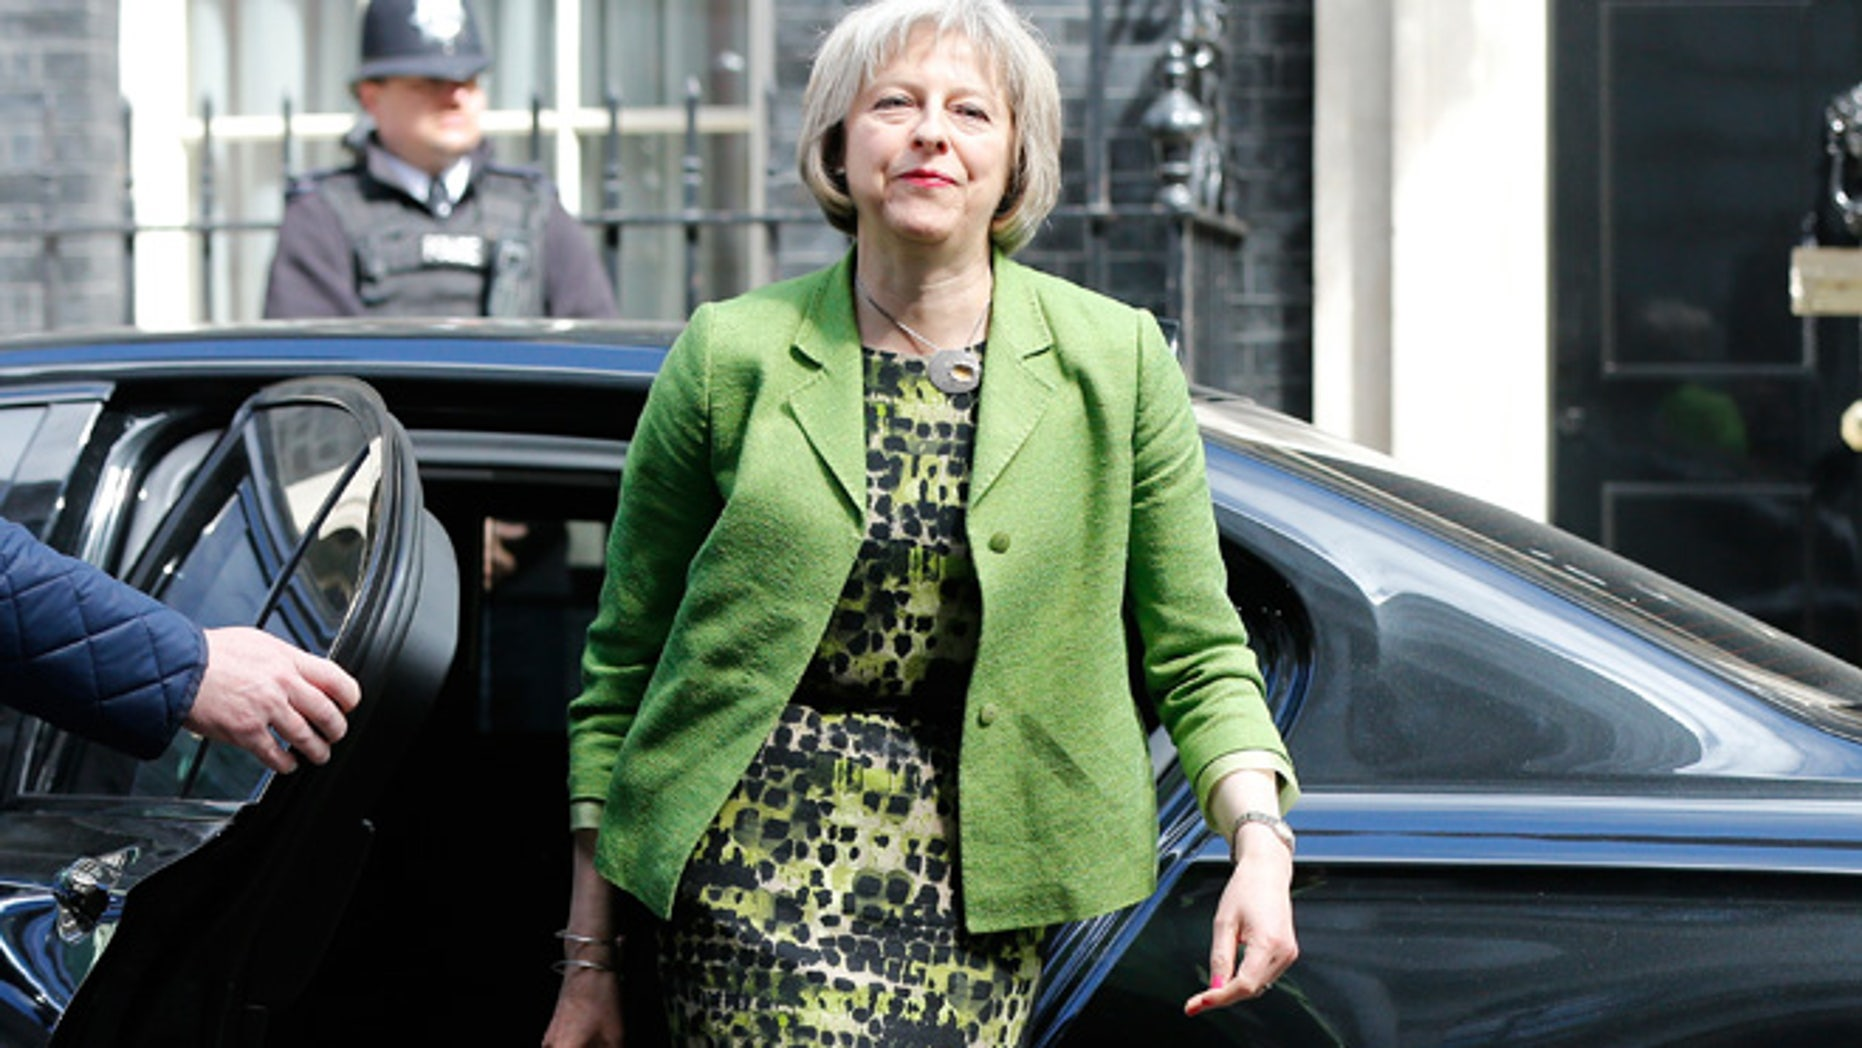 Theresa May was described as a understated workhorse who maintained a low profile throughout the campaign.